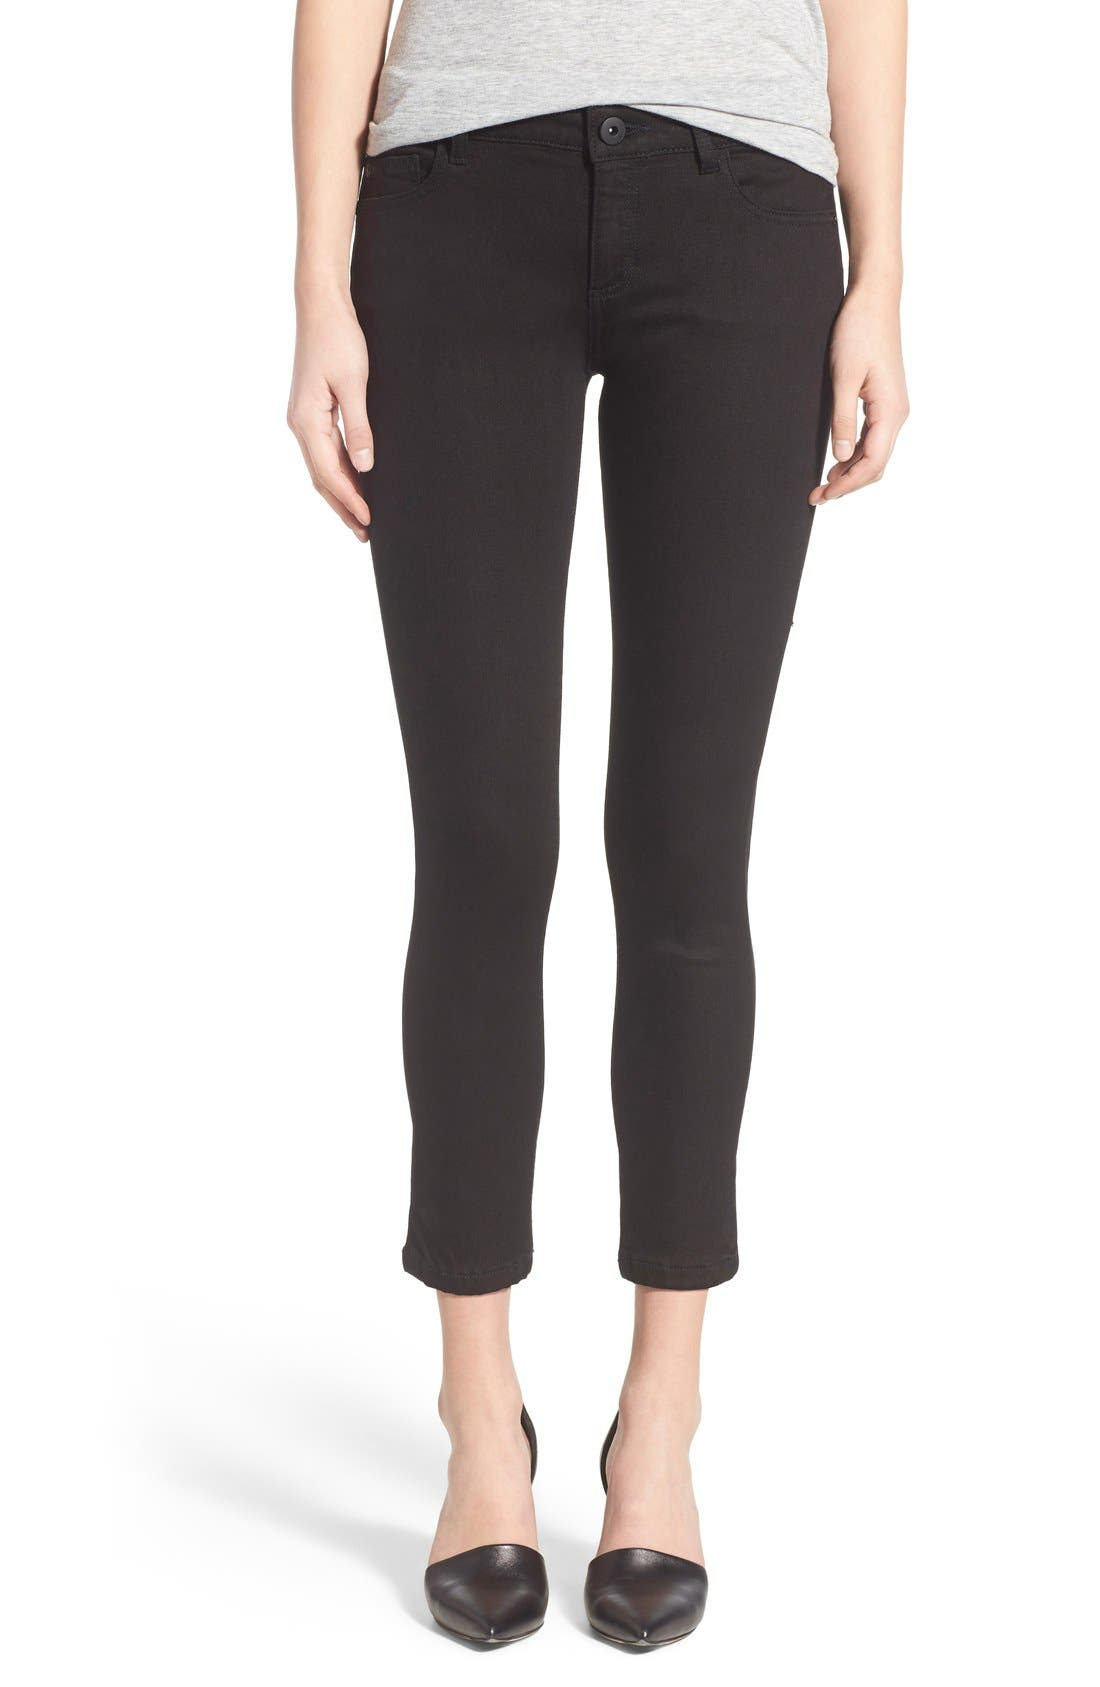 Main Image - DL1961 'Florence' Instasculpt Crop Skinny Jeans (Hail)